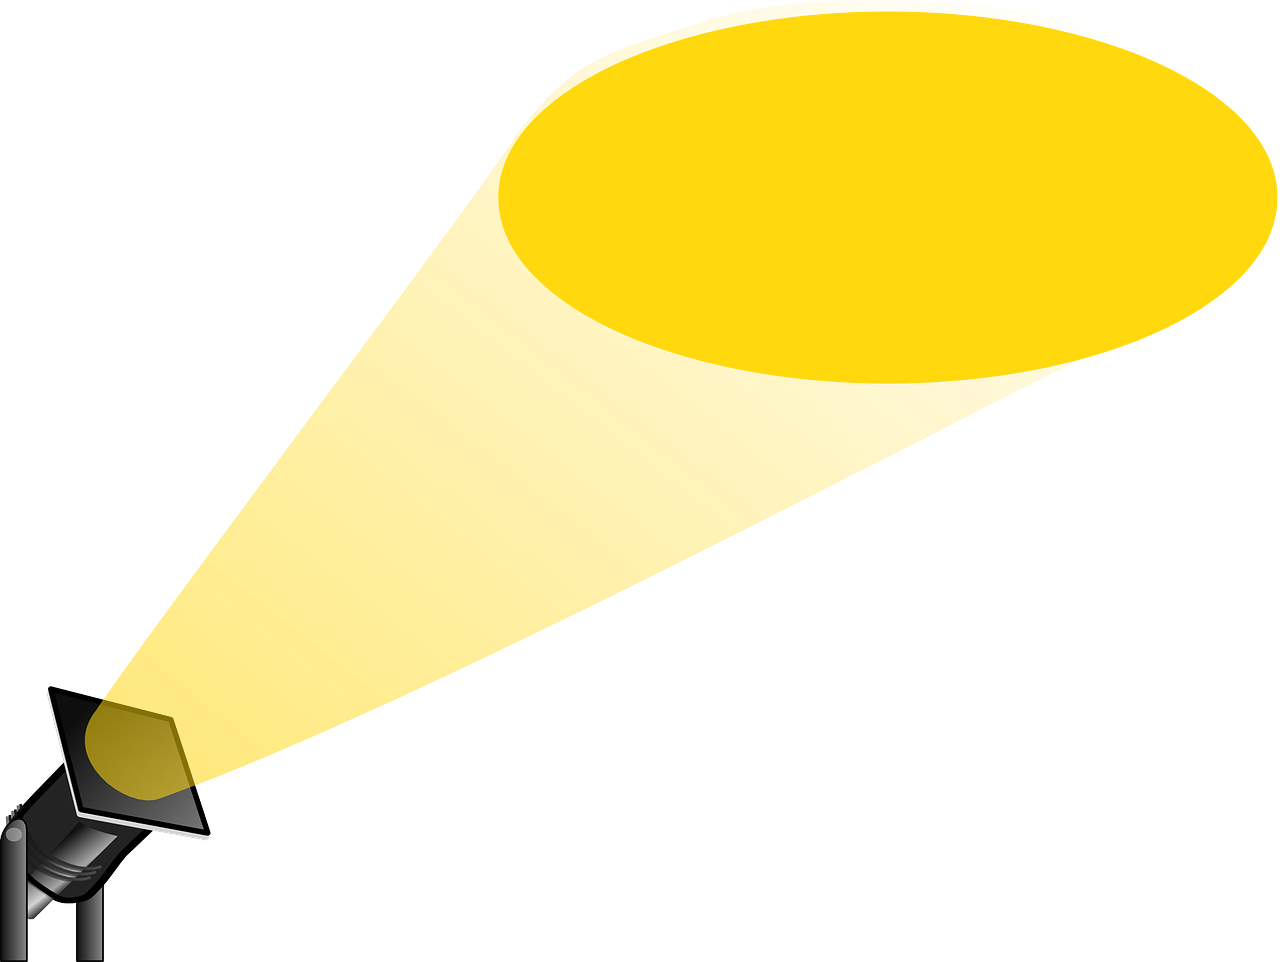 Picture of a yellow spot light pointing up